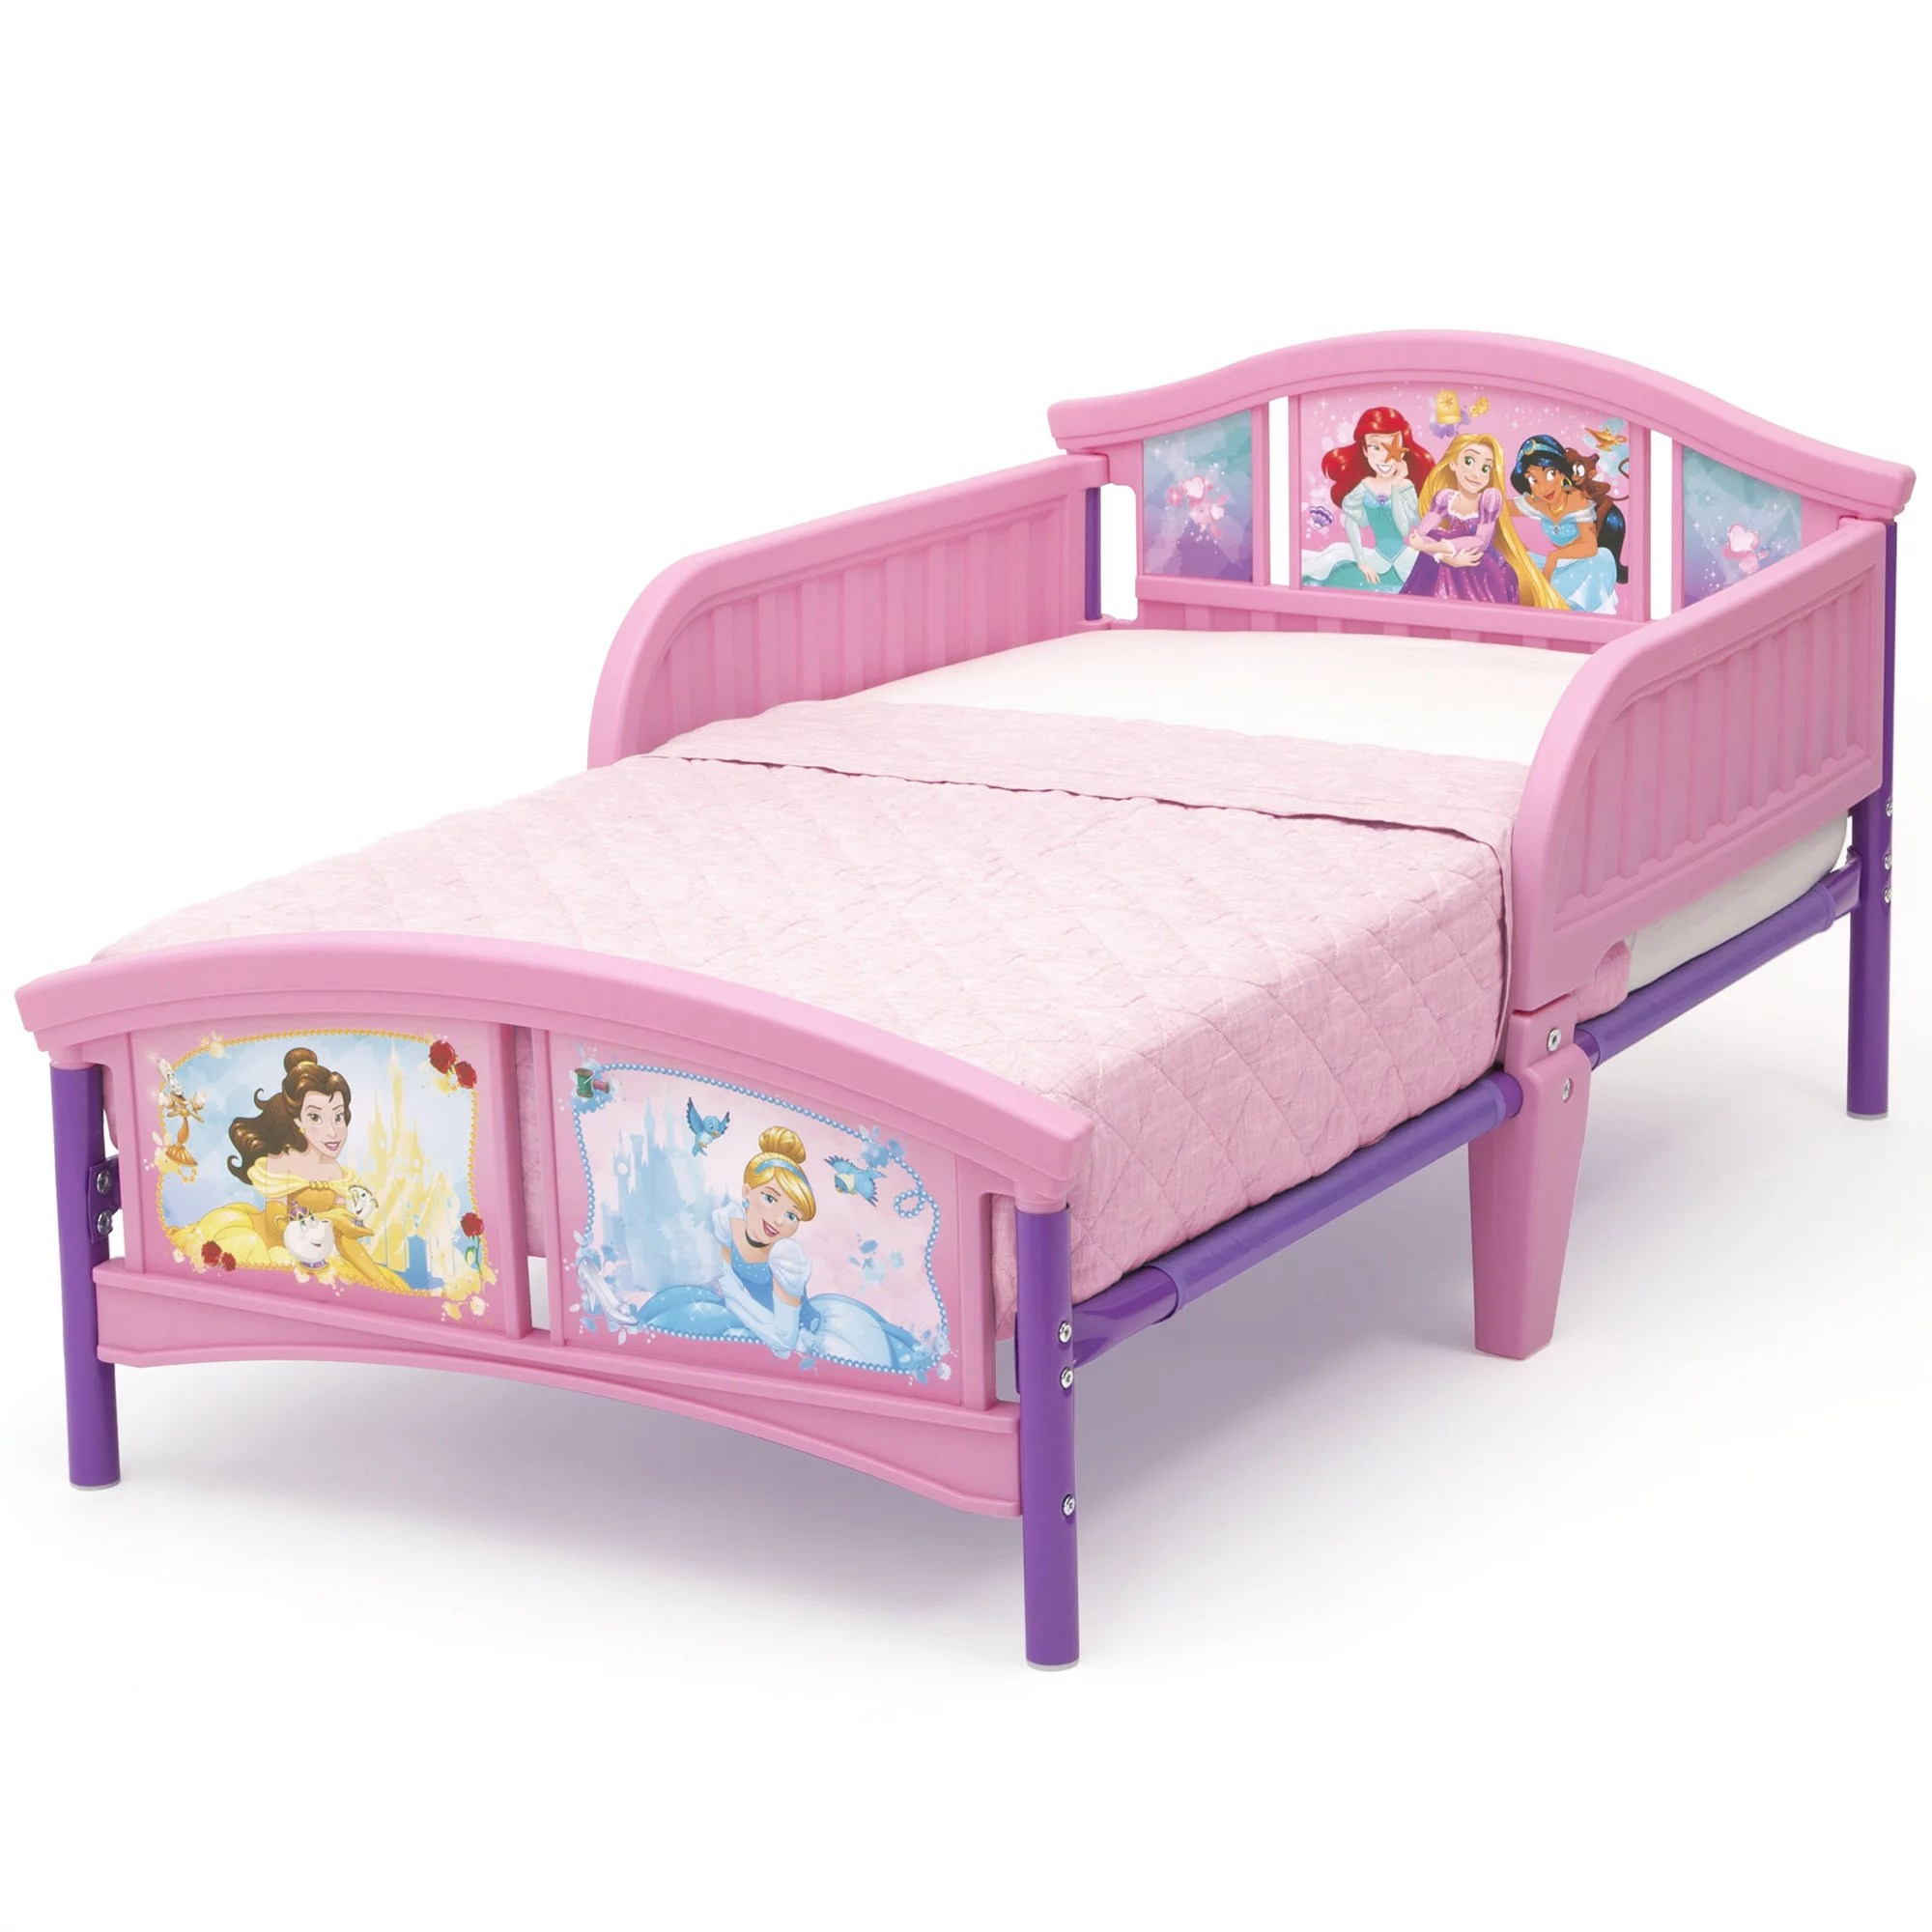 Disney Princess Plastic Toddler Bed By Delta Children Forever Princess Mattress Not Included Walmart Com Walmart Com